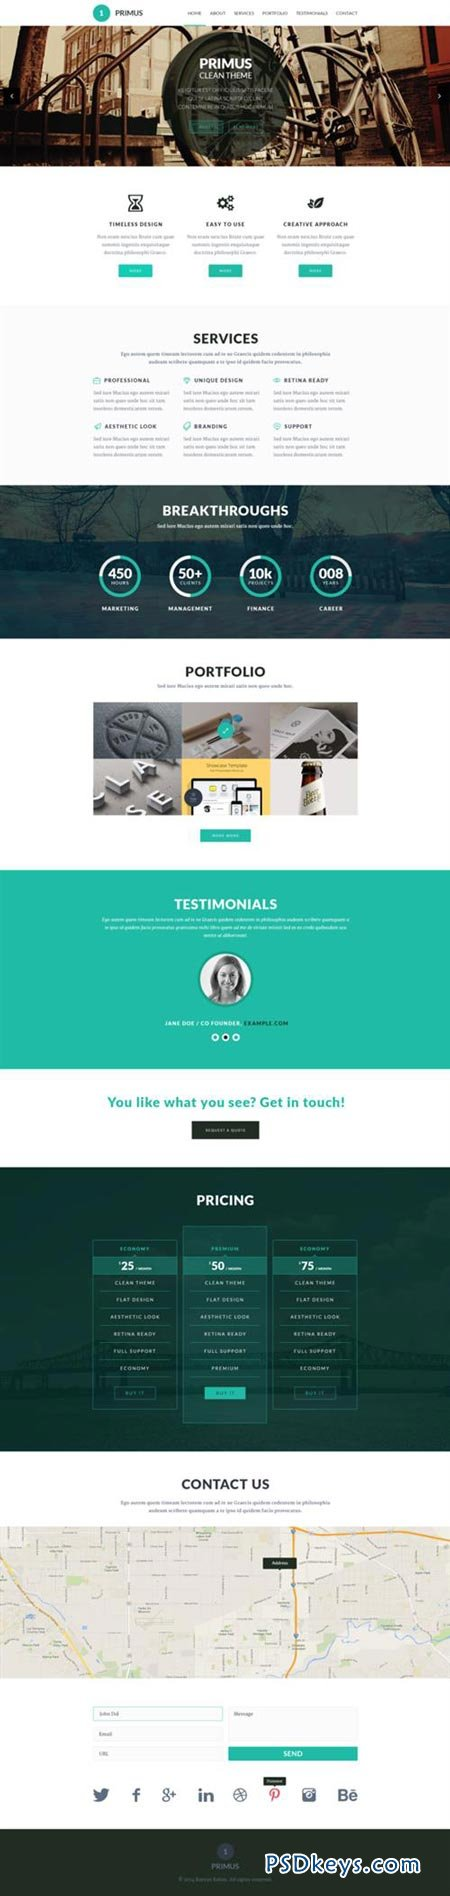 primus one page parallax template free download photoshop vector stock image via torrent. Black Bedroom Furniture Sets. Home Design Ideas